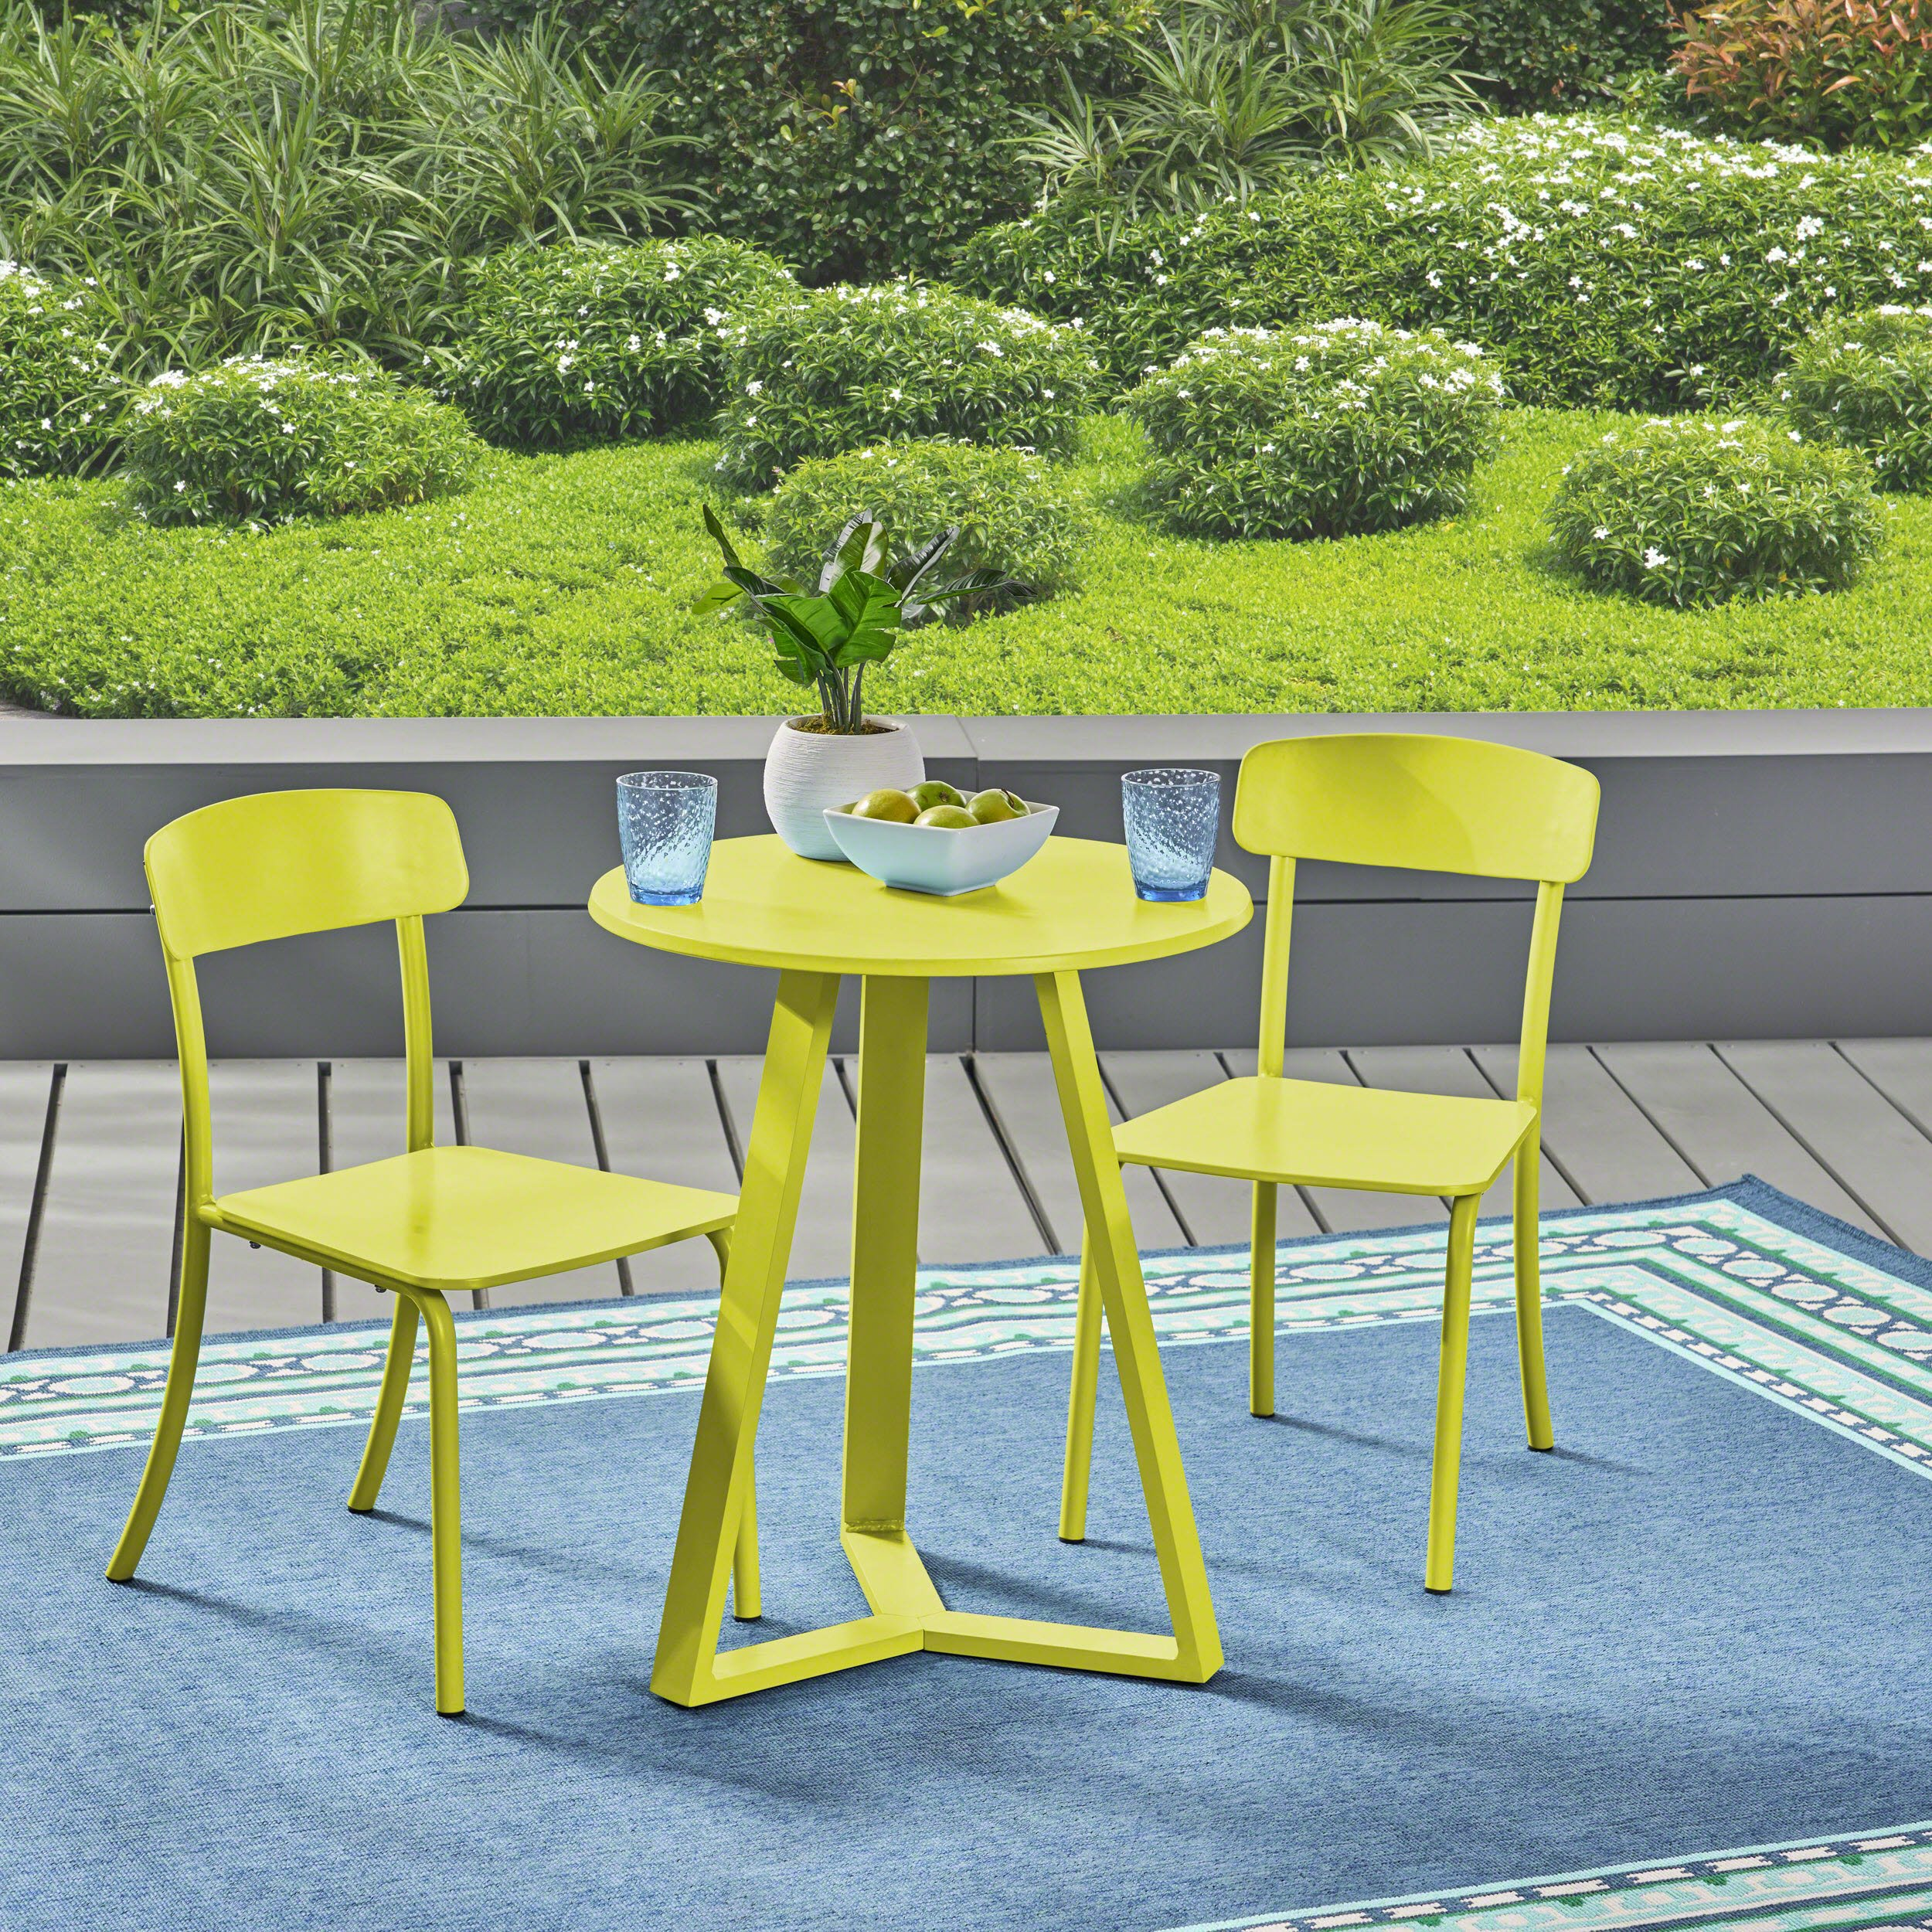 Great Deal Furniture Larissa Outdoor Bistro Set, Matte Lime Green